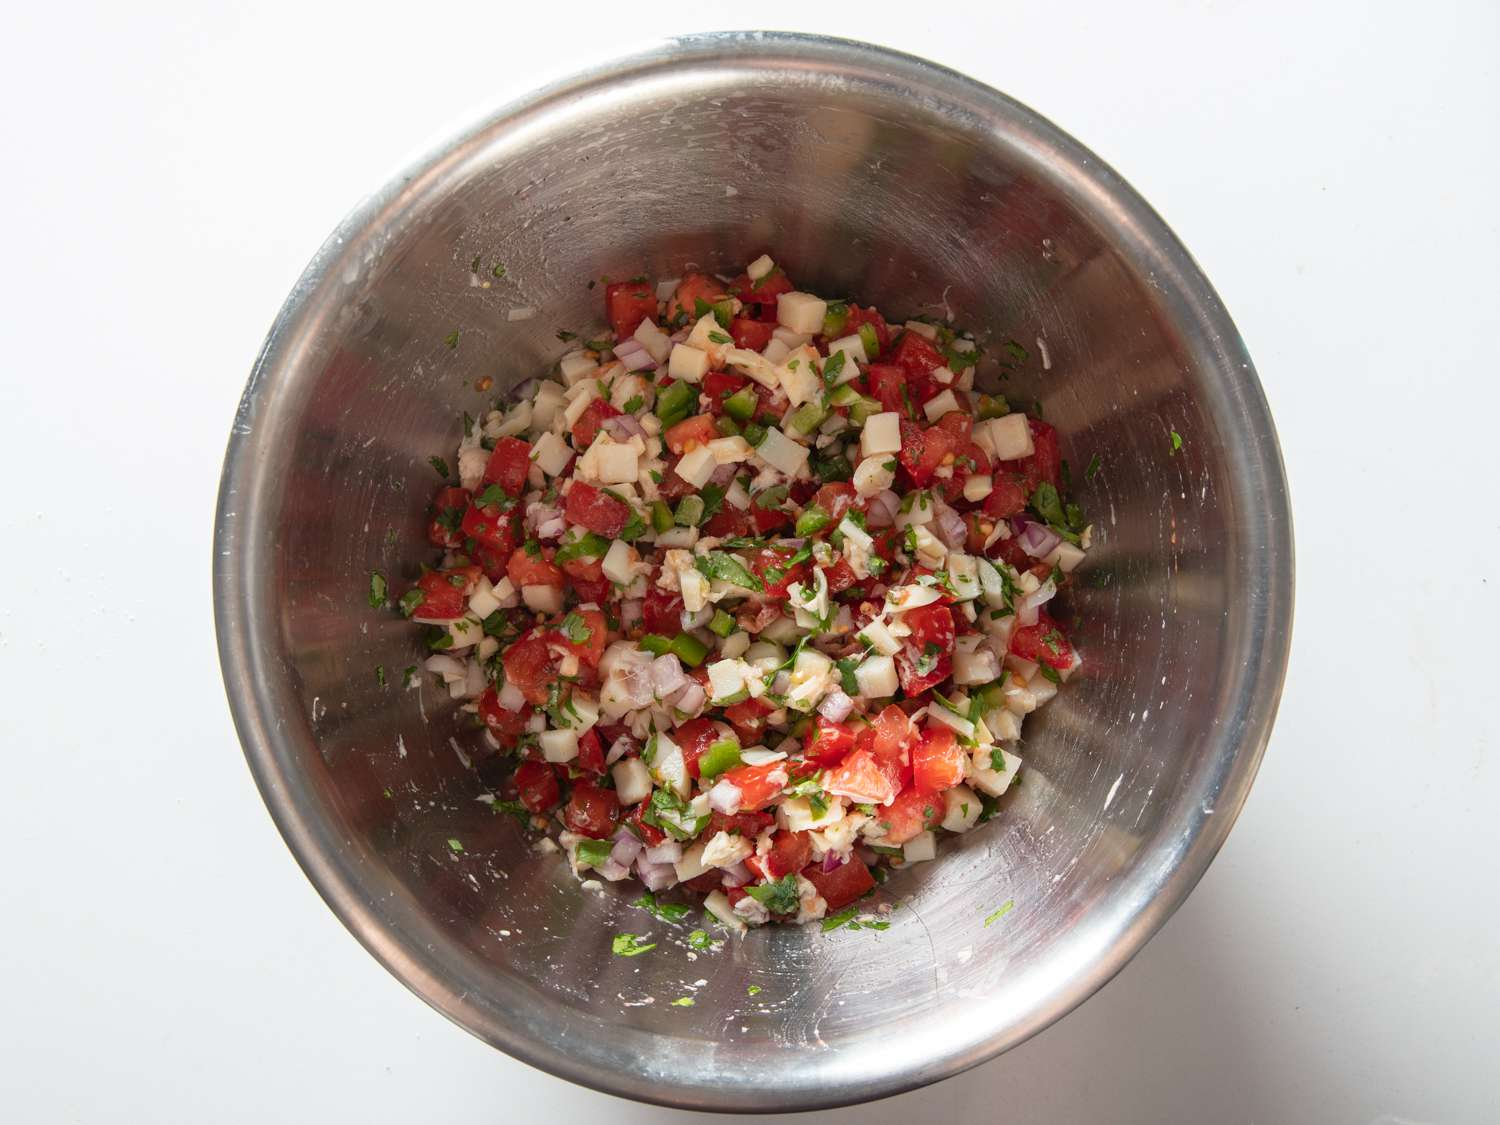 hearts of palm salsa being made in a stainless steel bowl